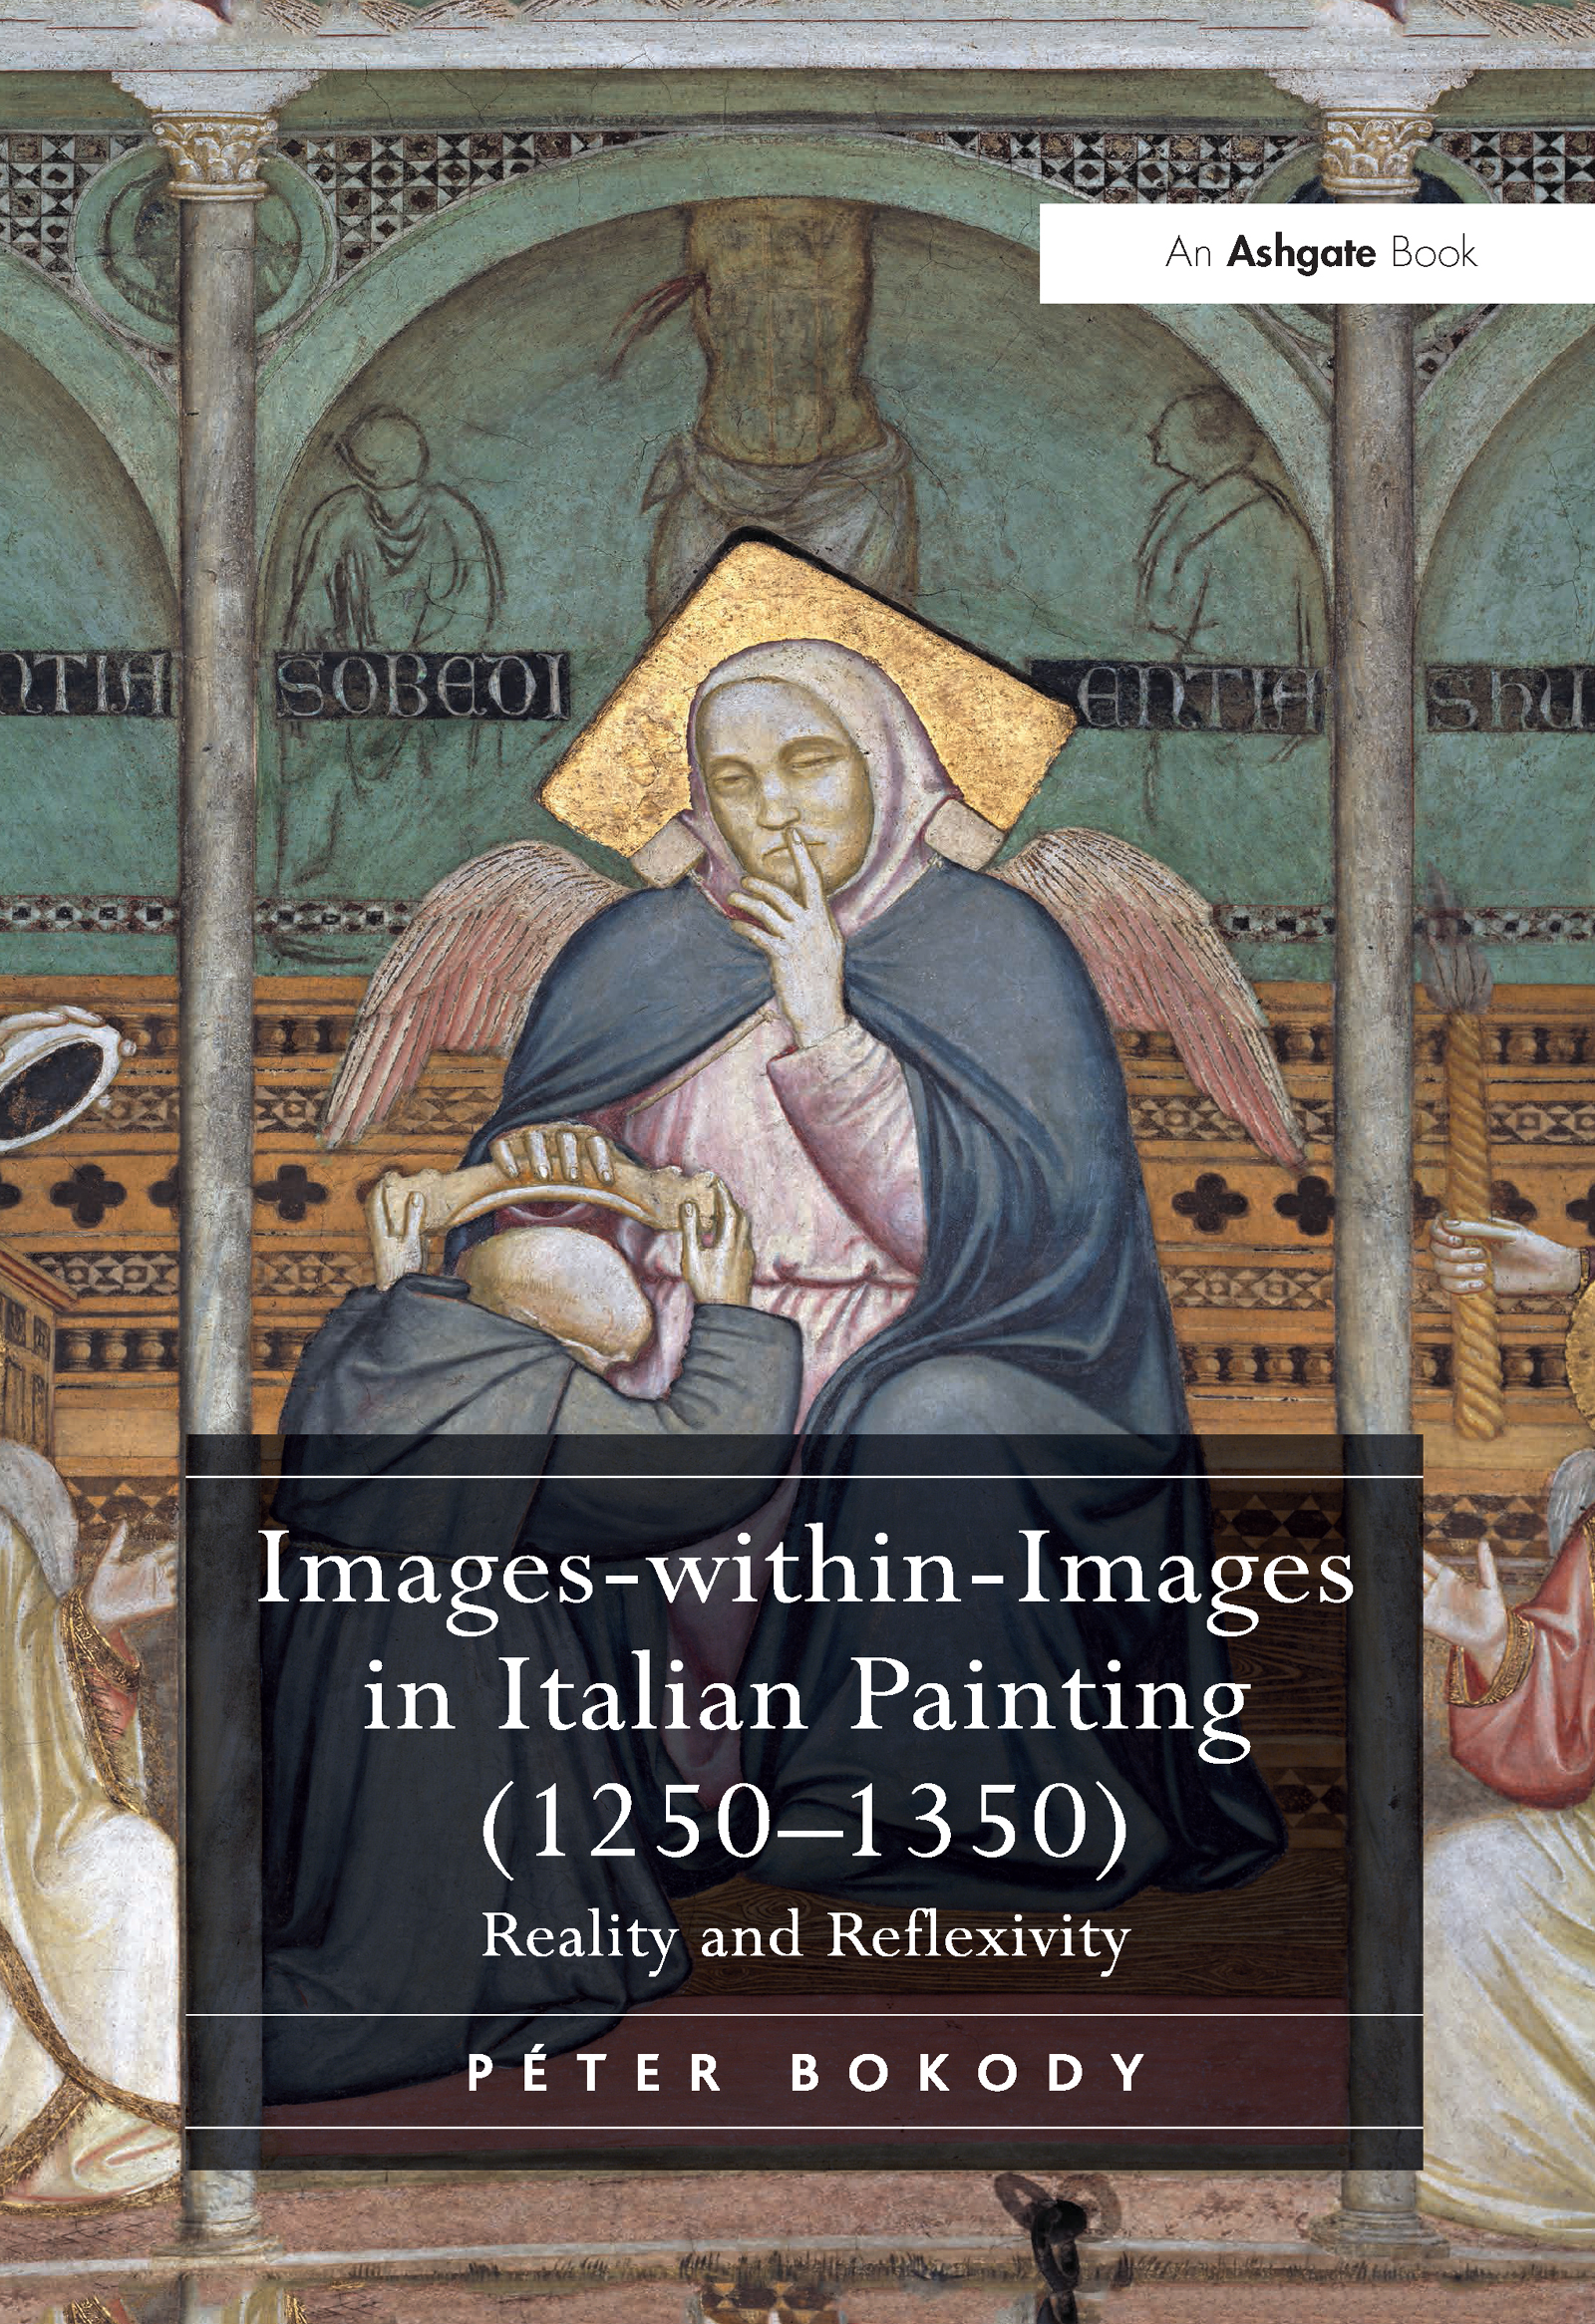 Images-within-Images in Italian Painting (1250-1350)